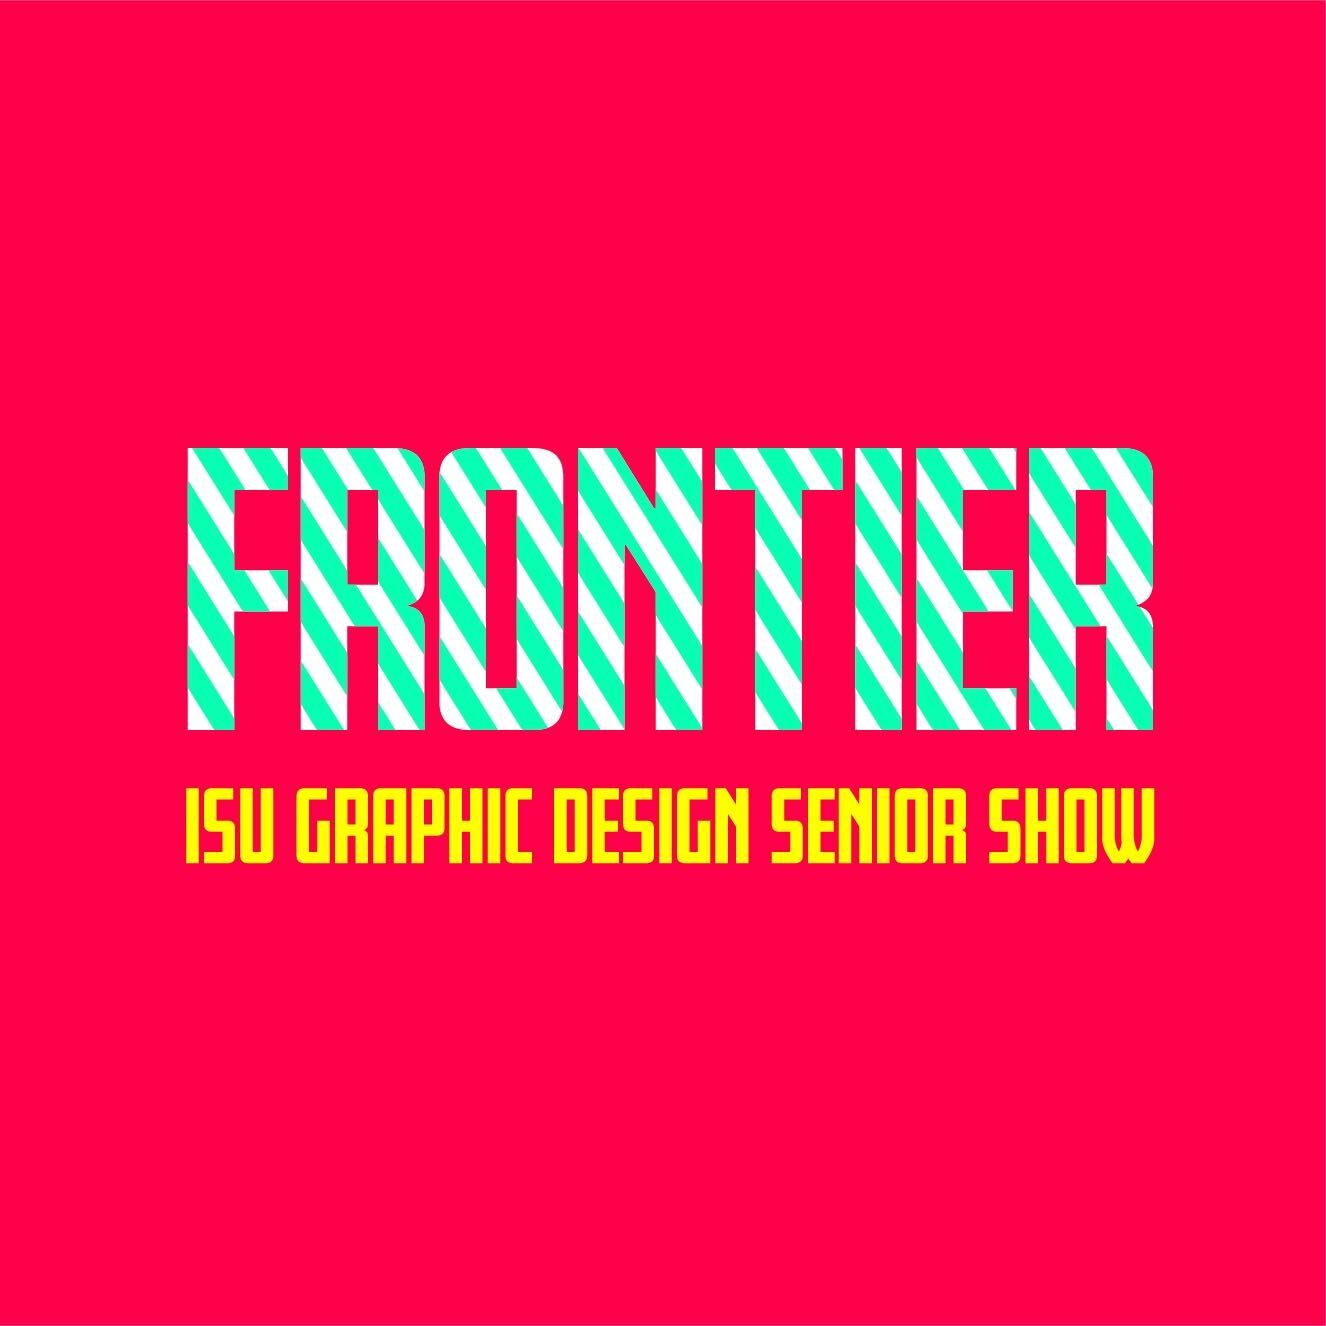 Frontier: On the Edge of Something Great - 2020 Graphic Design Senior Show